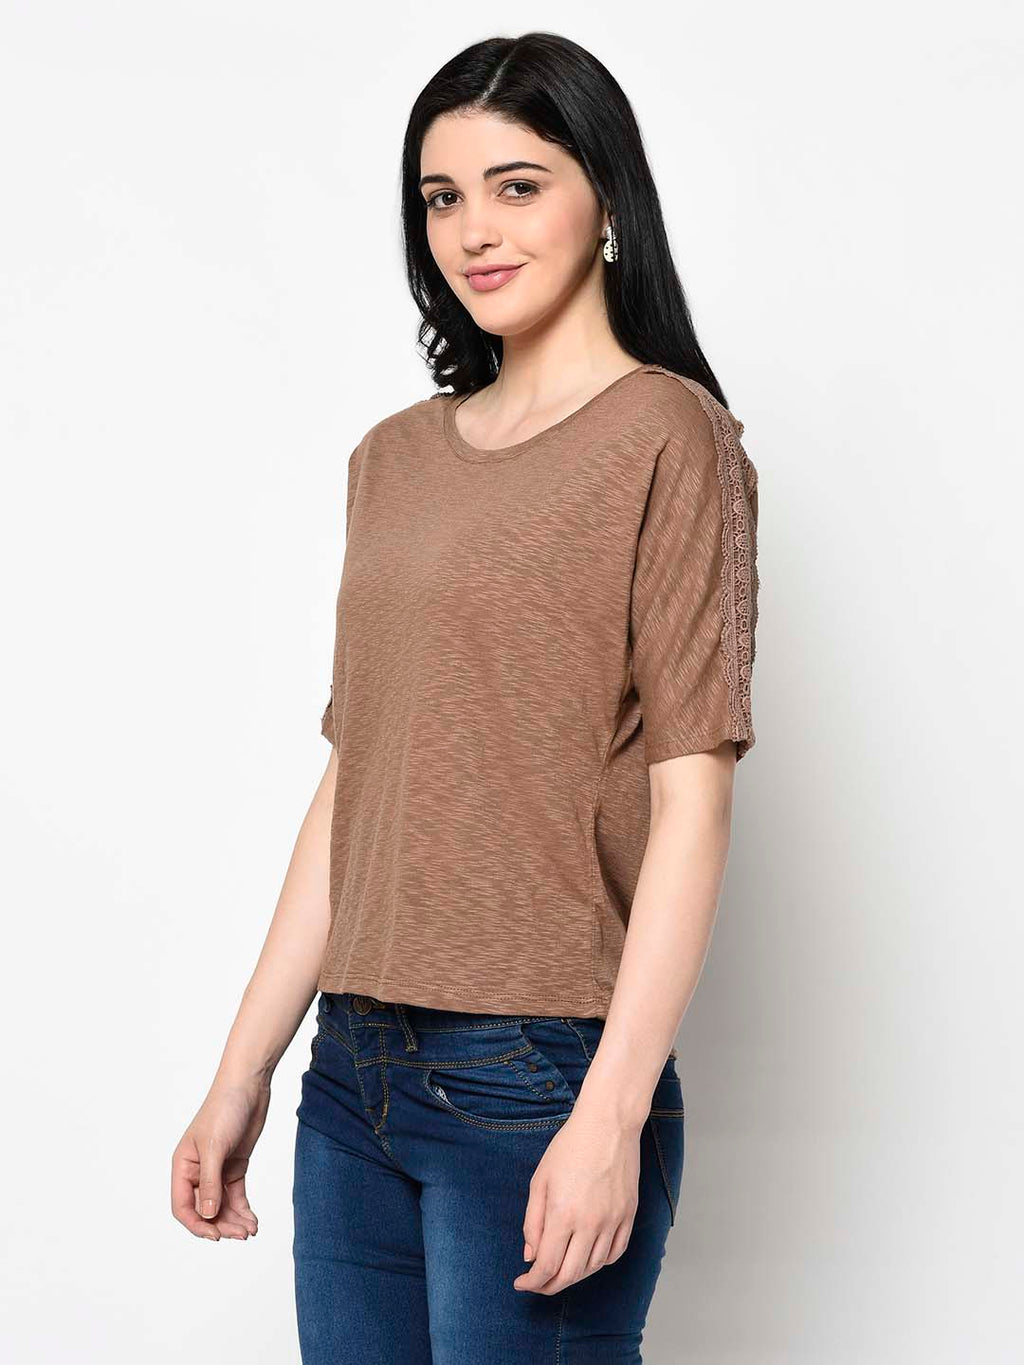 Beige Slub Tee with Lace at Sleeves - Avsoy